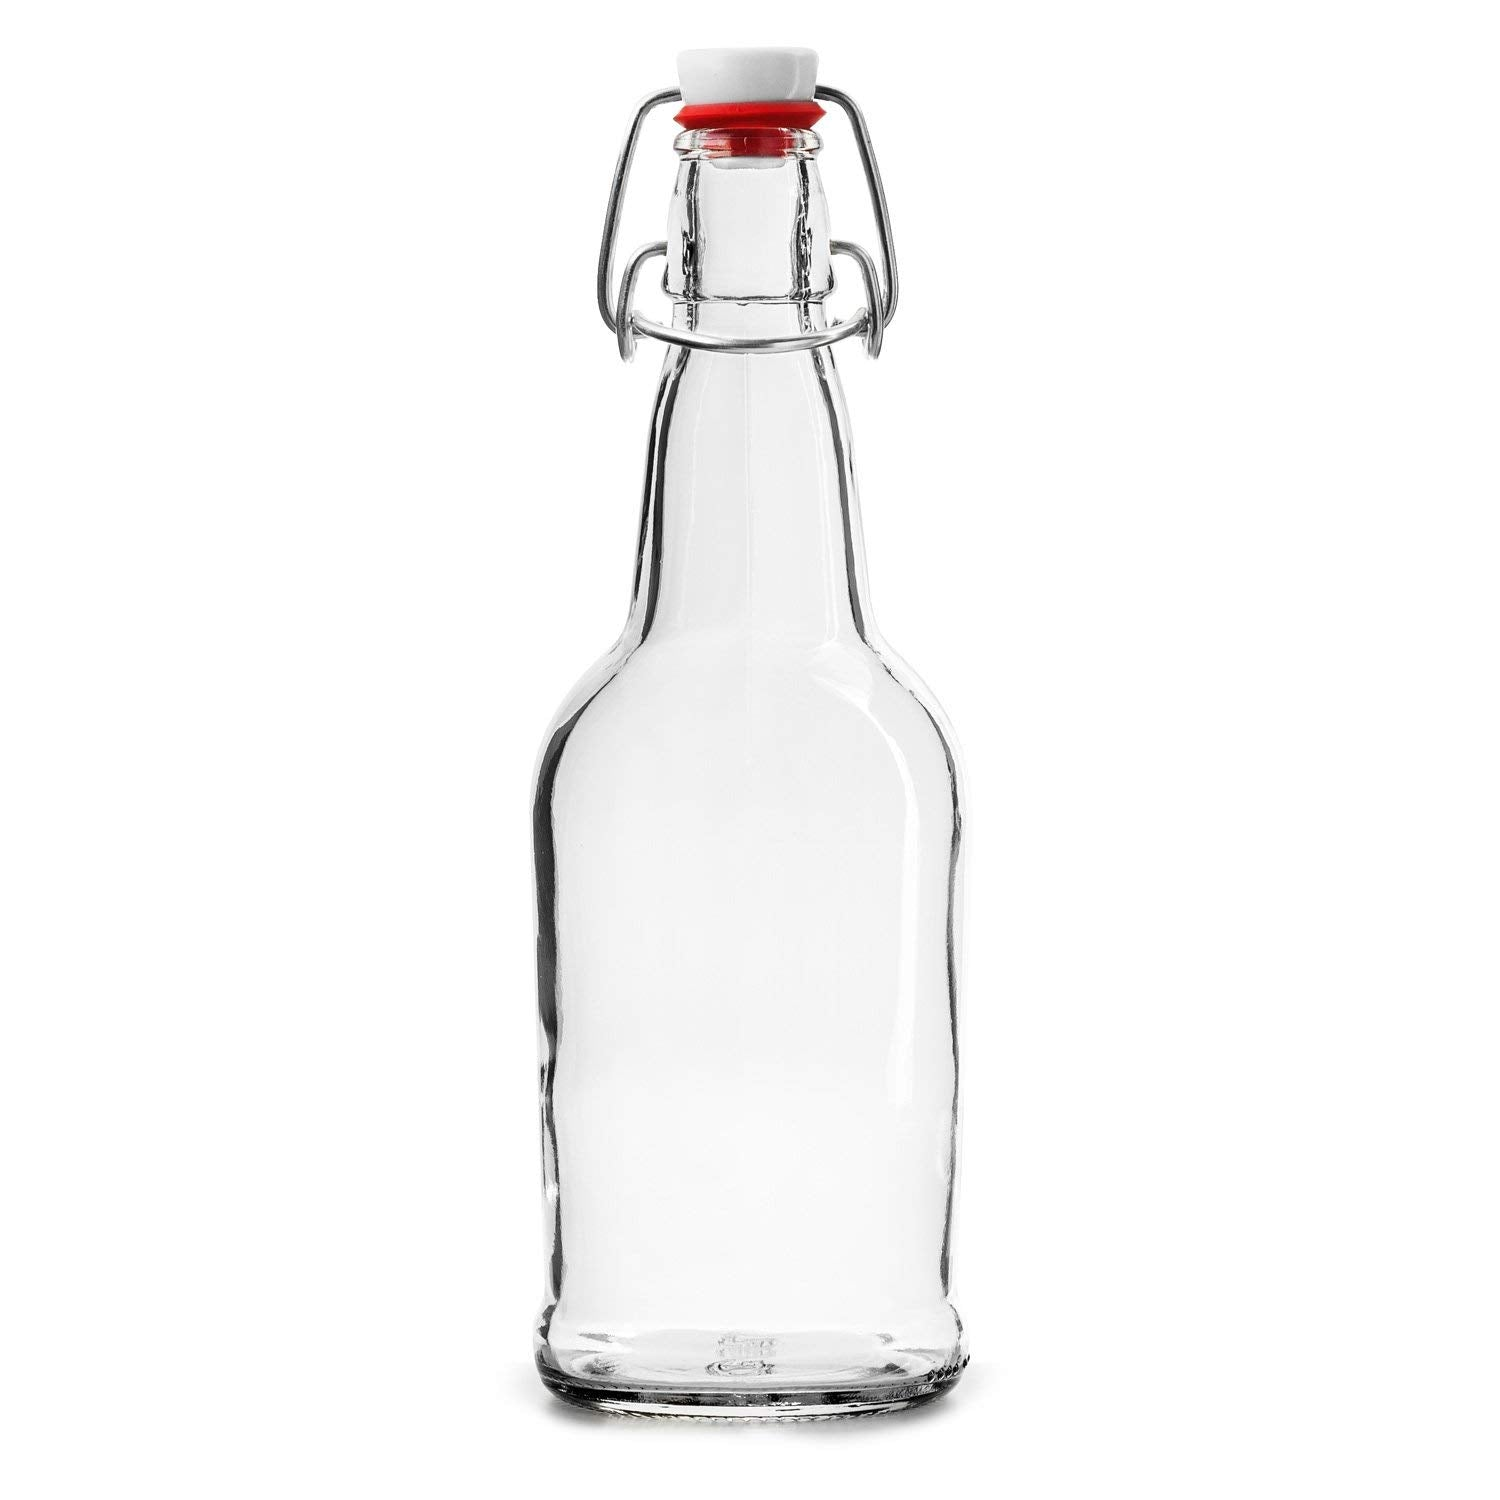 Swing Top Bottle - 500 ml / 16 oz - Yemoos Nourishing Cultures